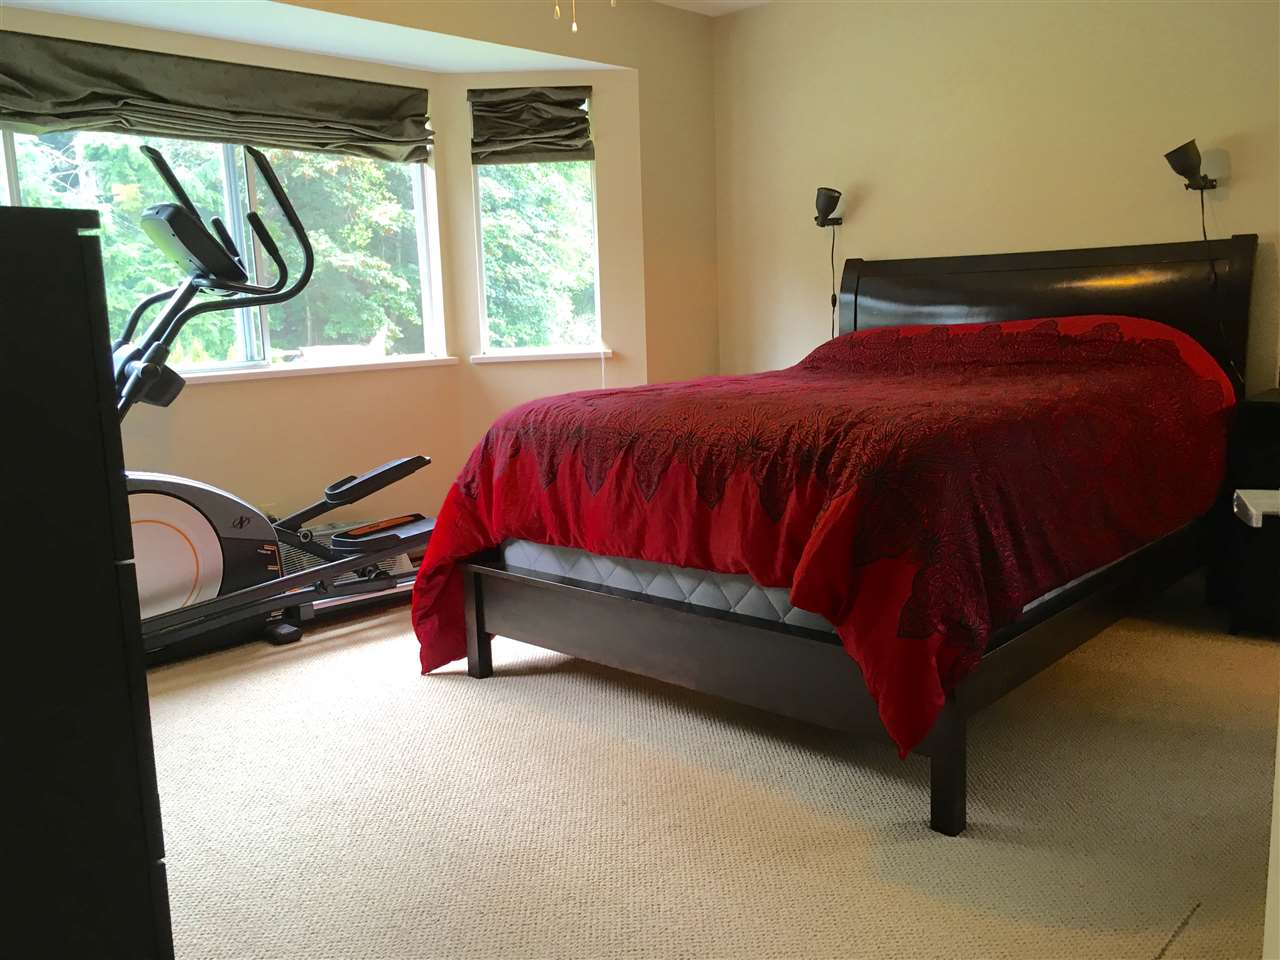 Photo 10: Photos: 1735 JENSEN Road in Gibsons: Gibsons & Area House for sale (Sunshine Coast)  : MLS® # R2098753